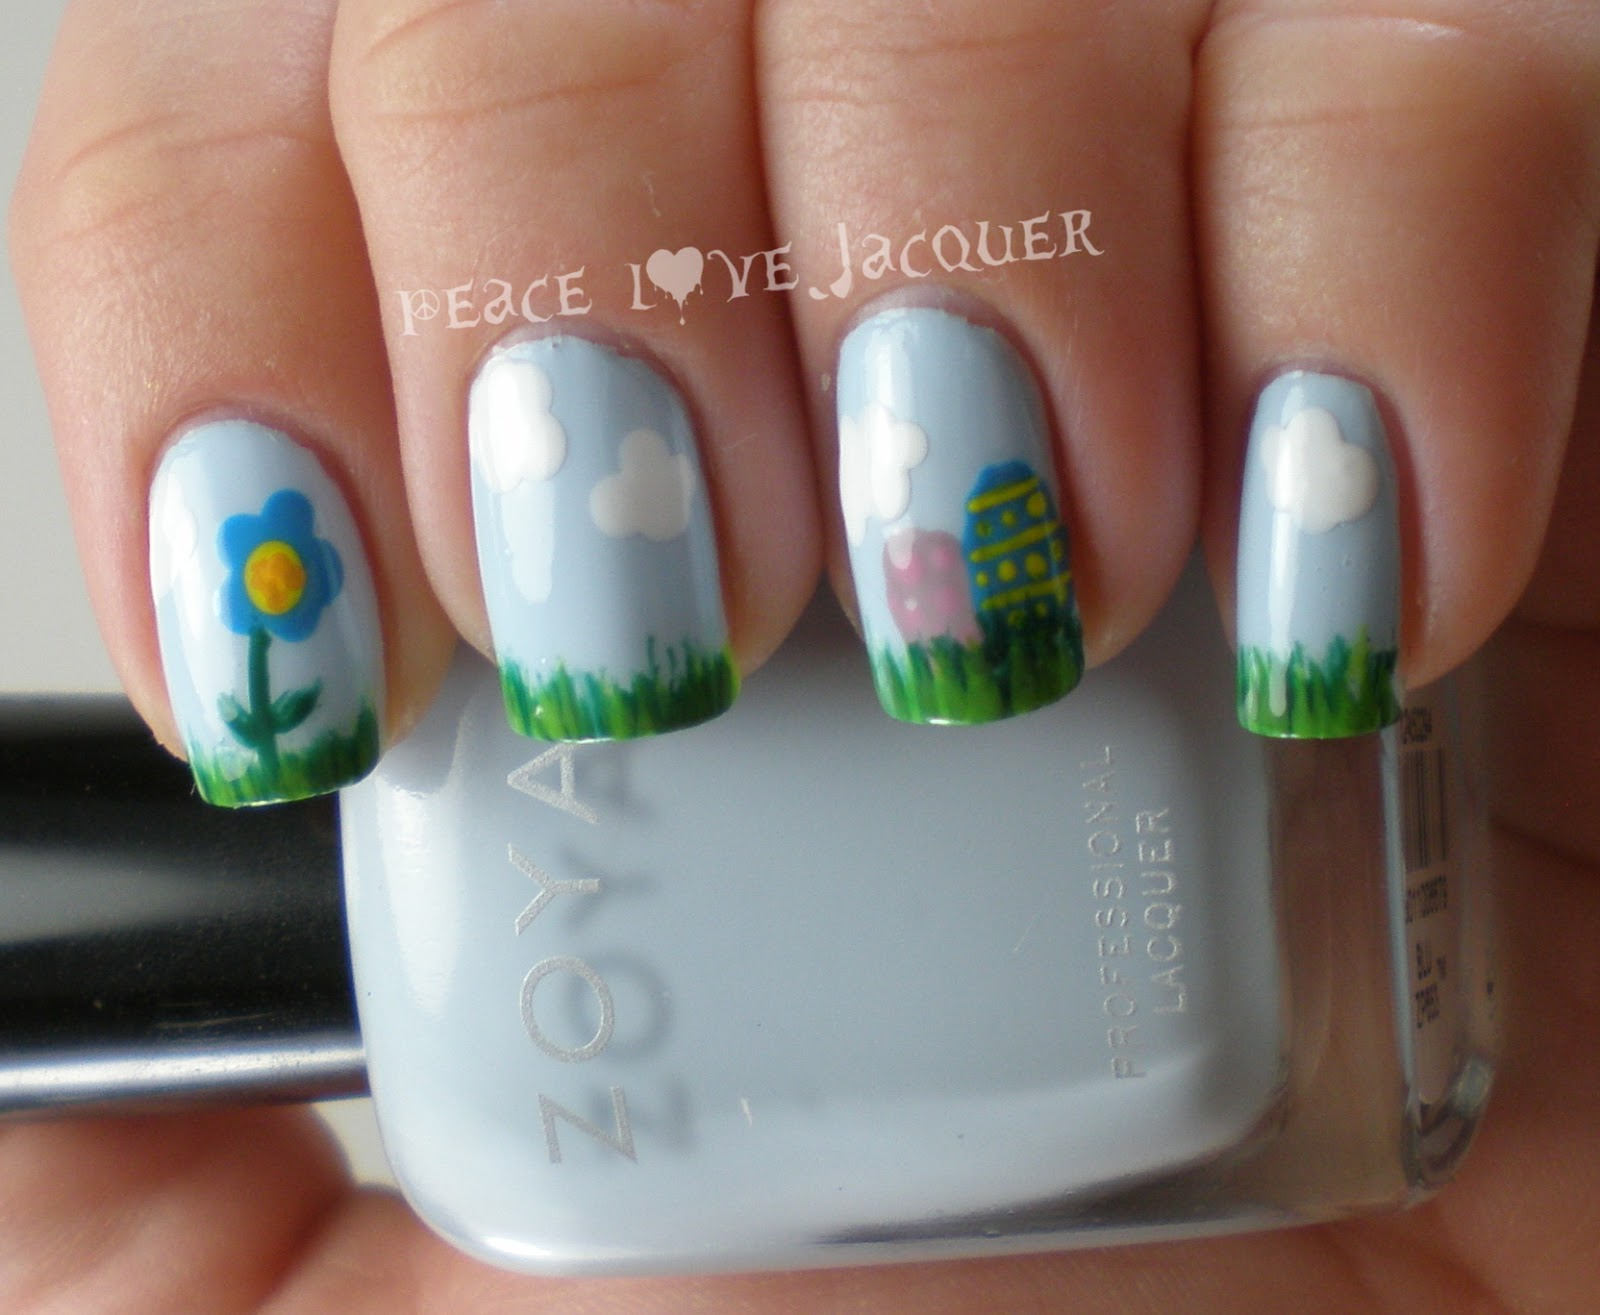 Peace Love Lacquer: Easter Nail Art Challenge Day 3 - Eggs